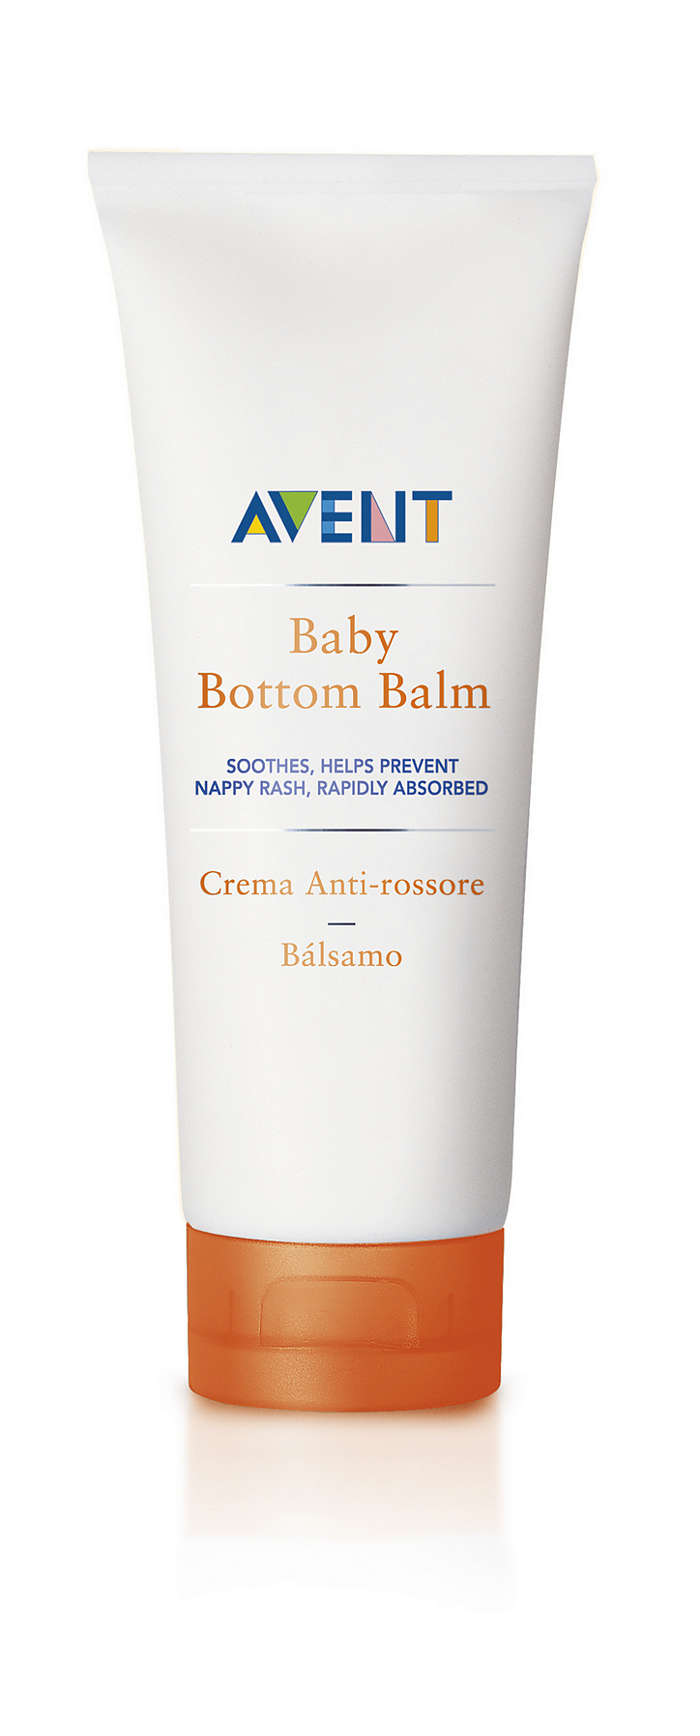 Soothes, helps prevent nappy rash, rapidly absorbs